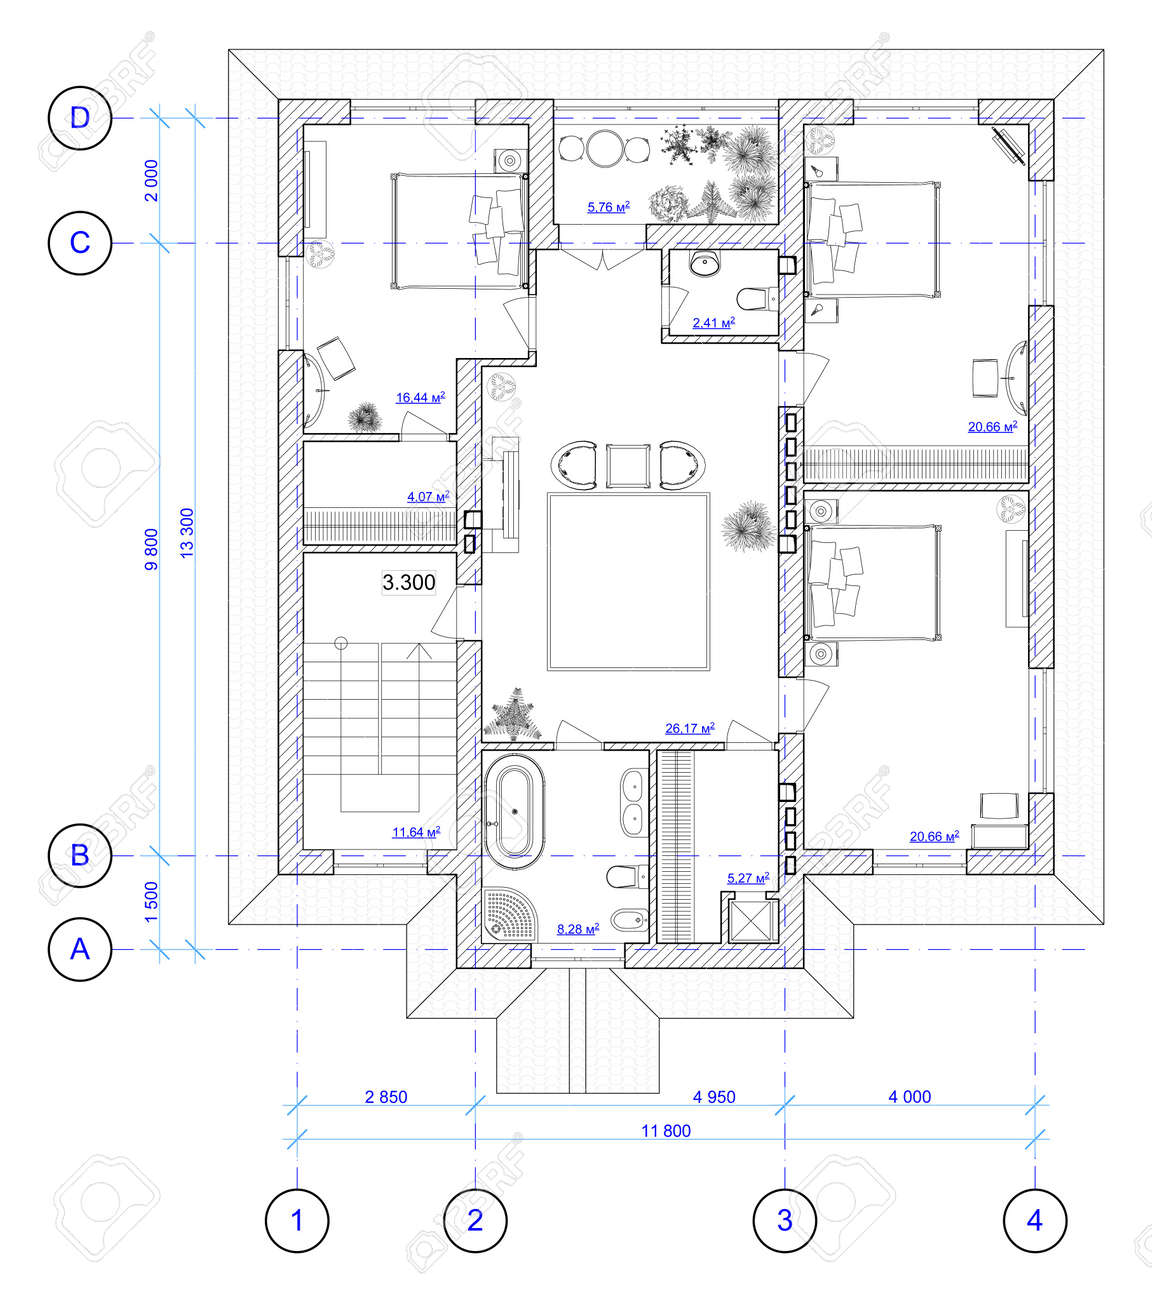 Architectural Black And White Plan Of 2 Floor Of House With A